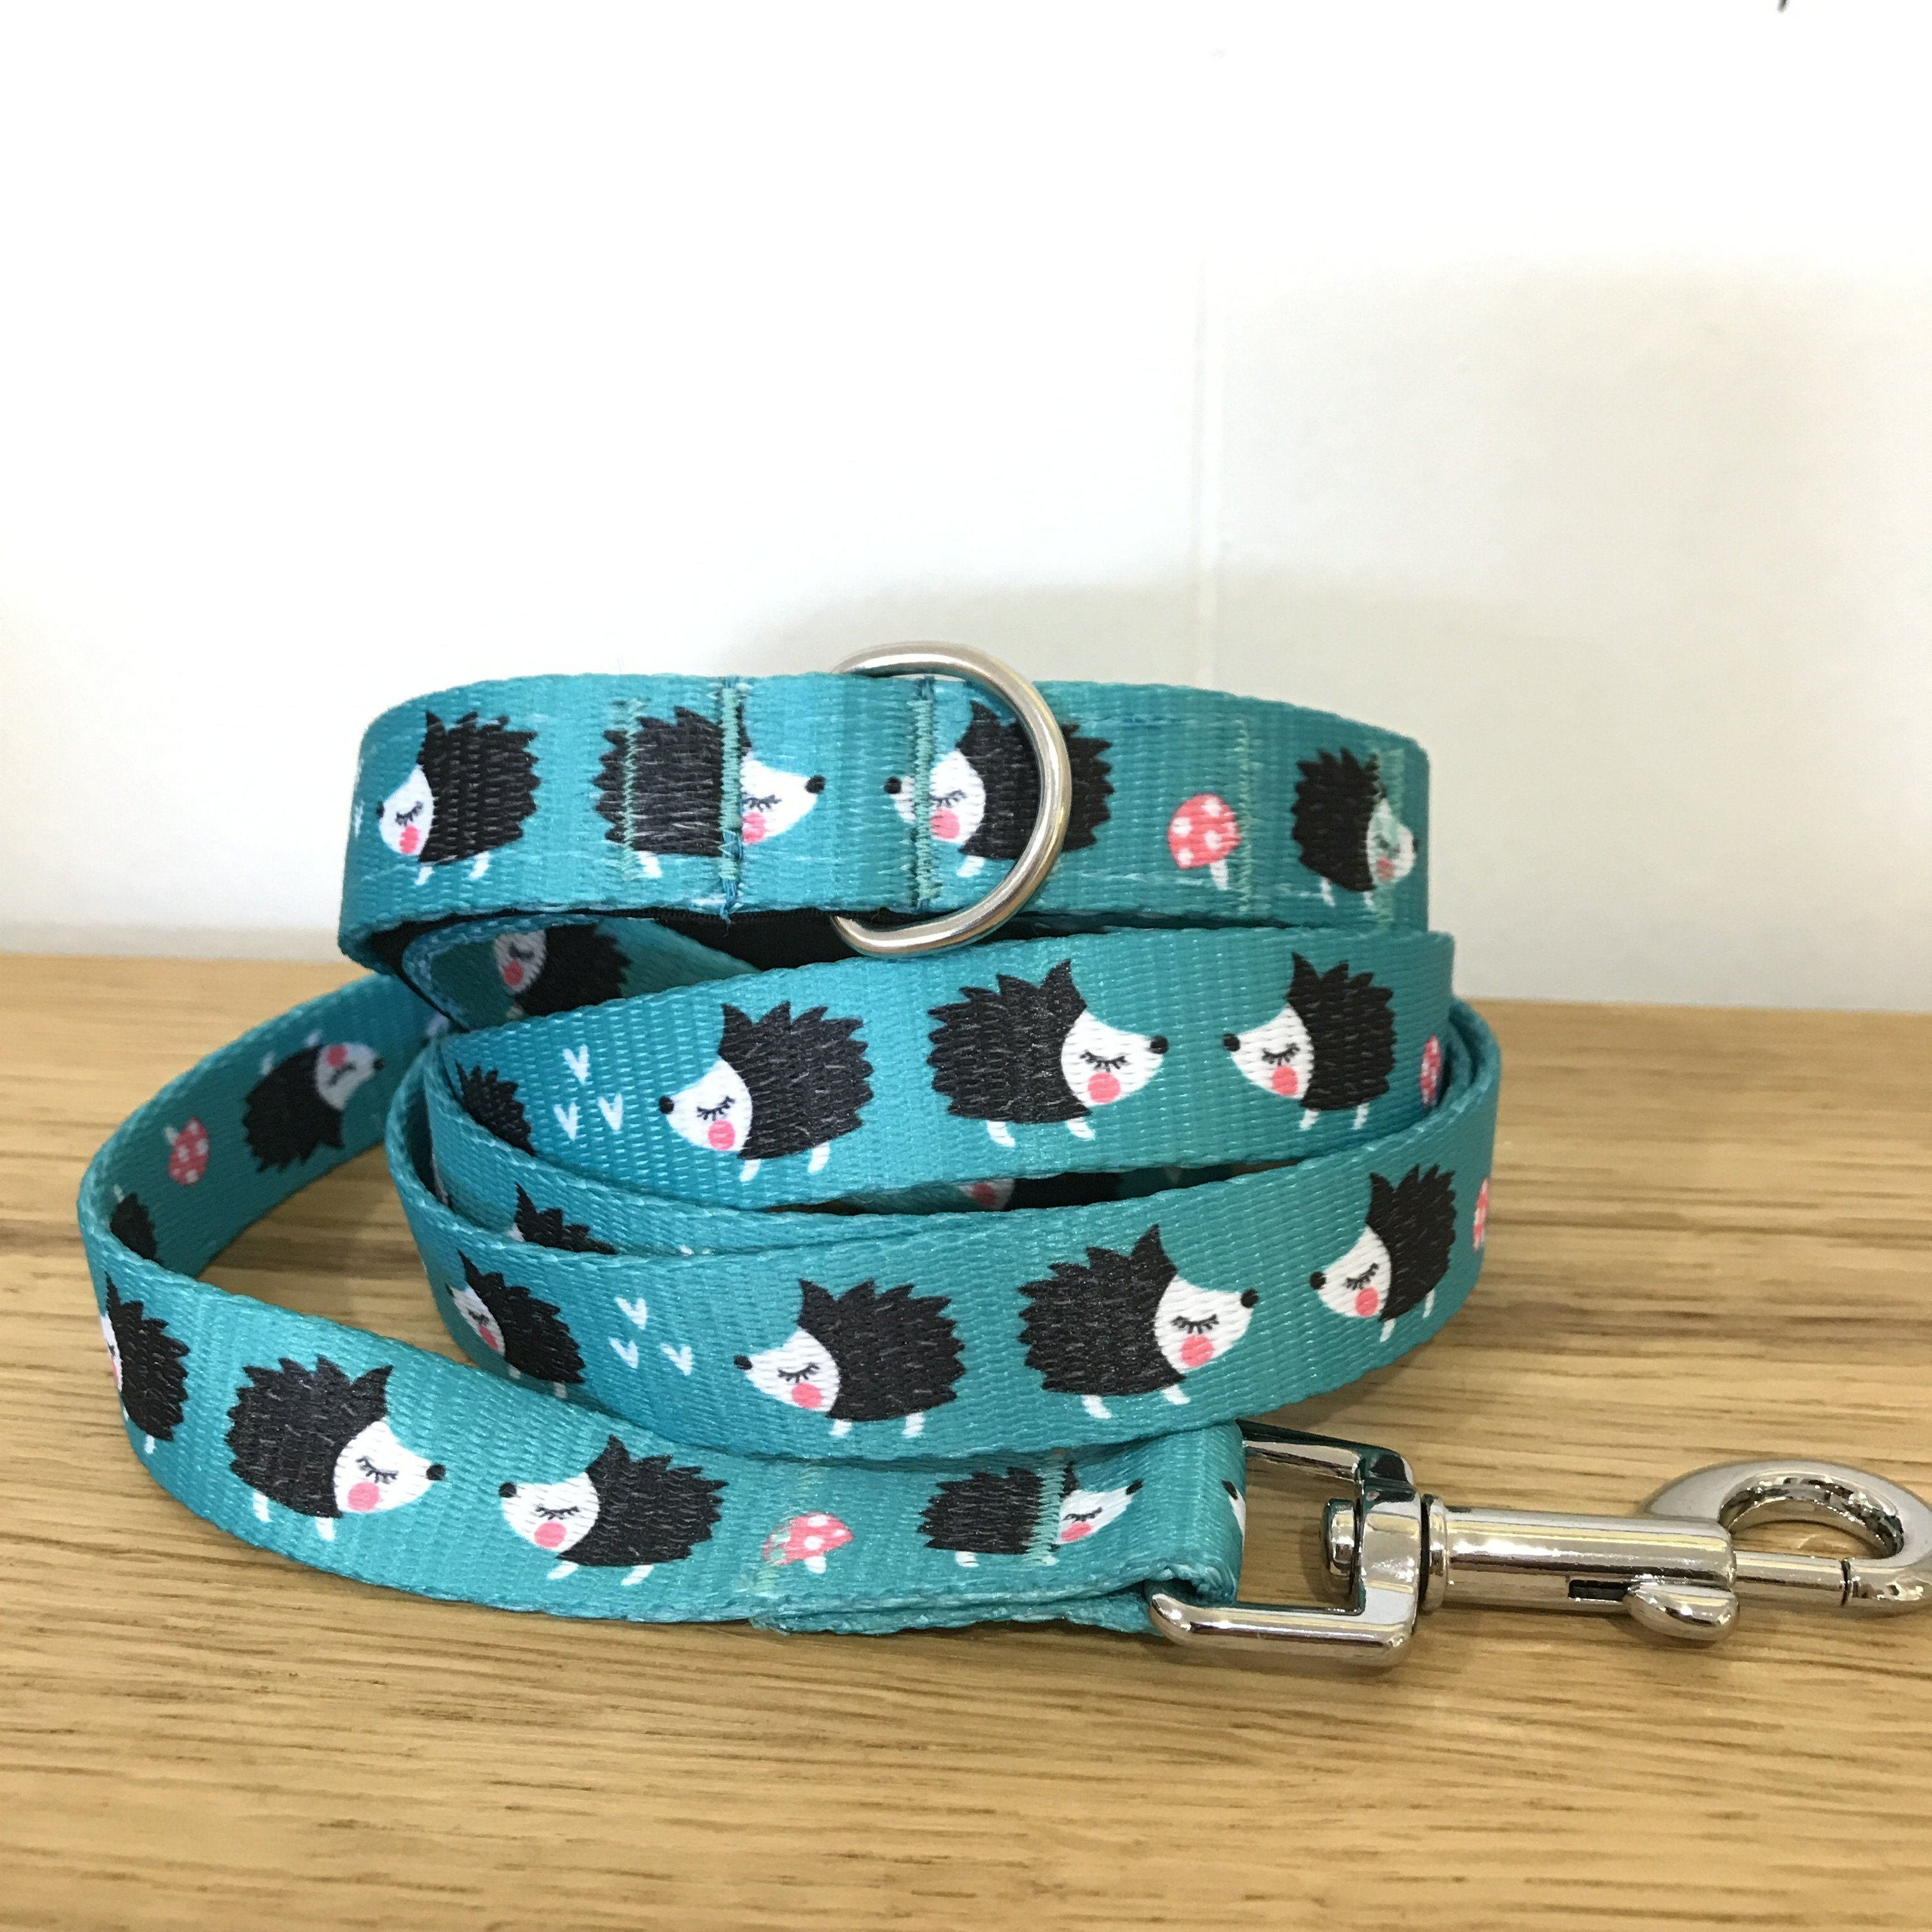 Eric the Echidna Dog Leash-Dizzy Dog Collars-Dizzy Dog Collars